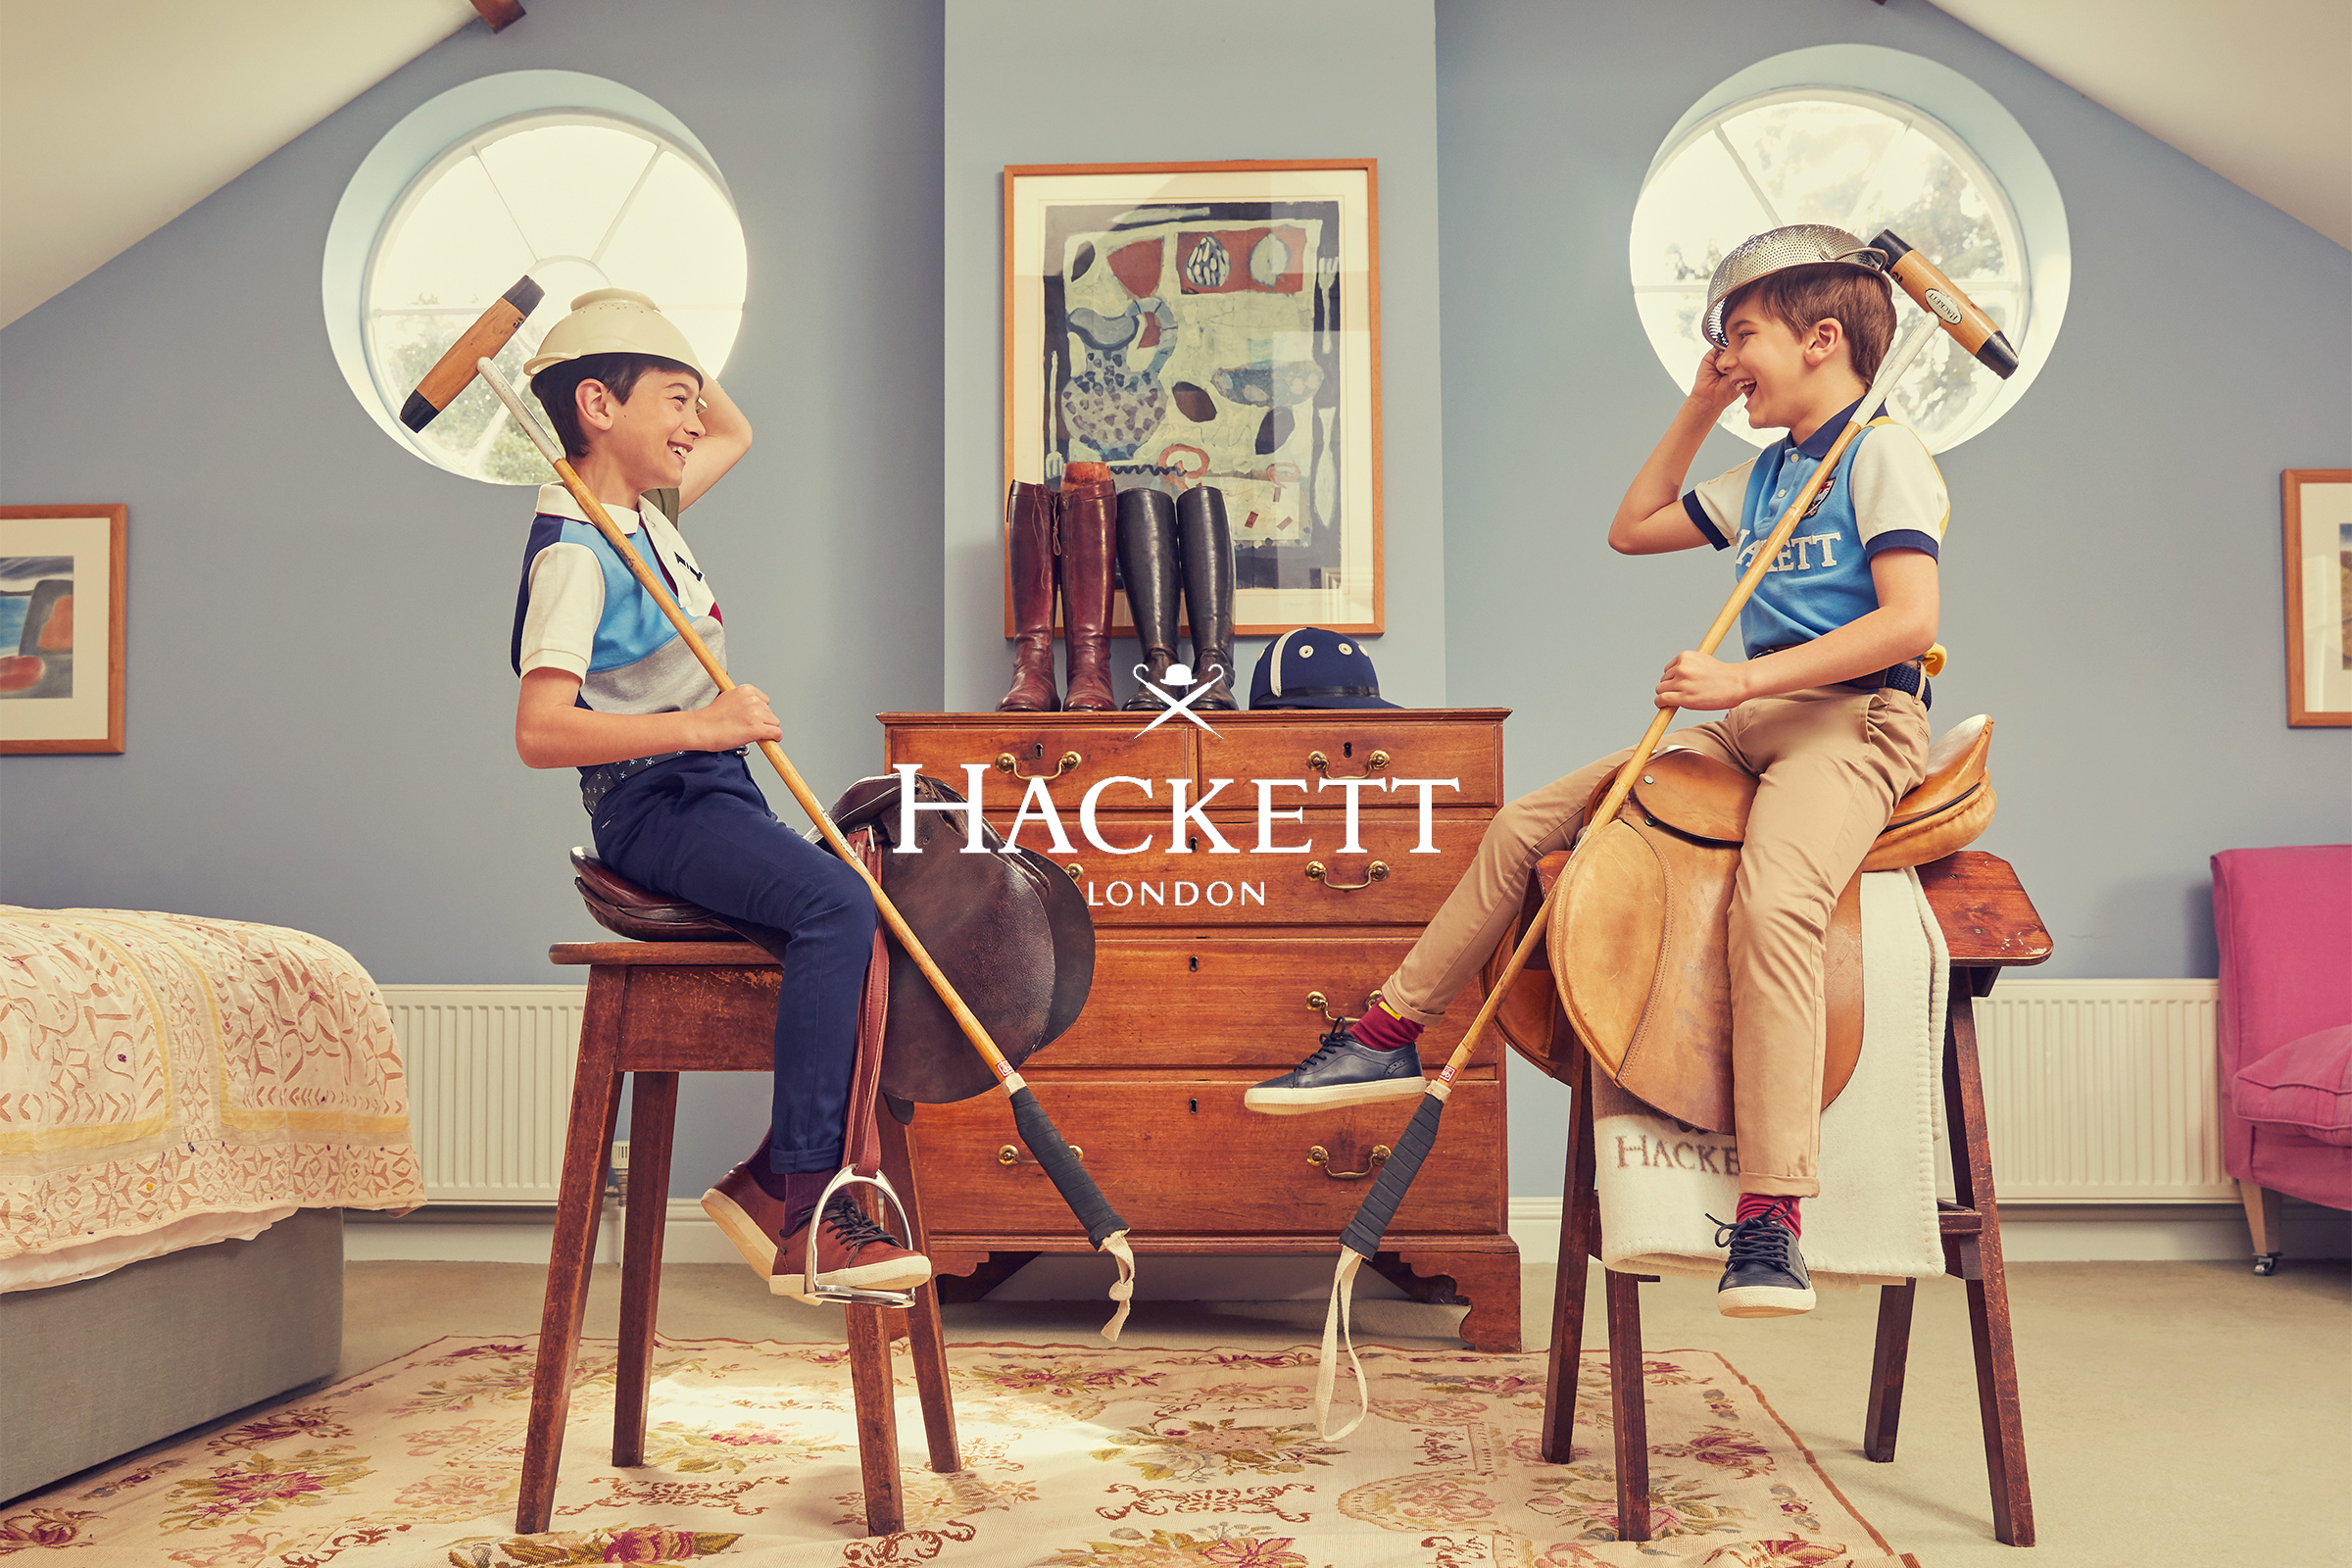 Hackett boys kids fashion campaign Autumn Winter